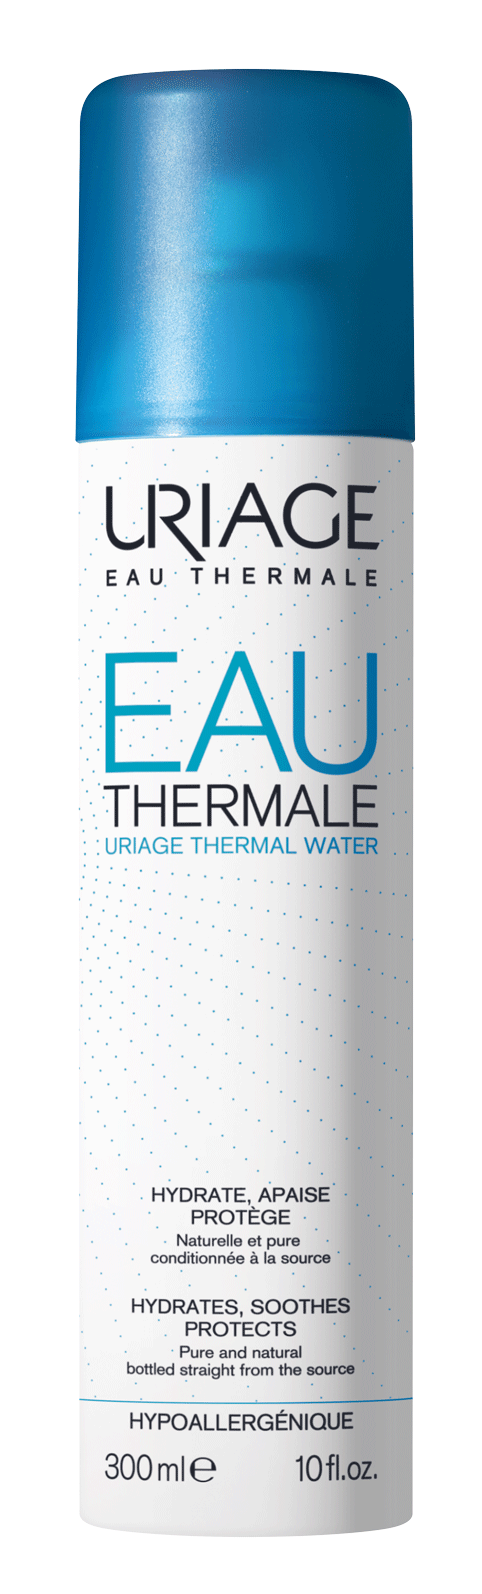 uriage-hydrating-spray-thermal-water-cosmetics-online